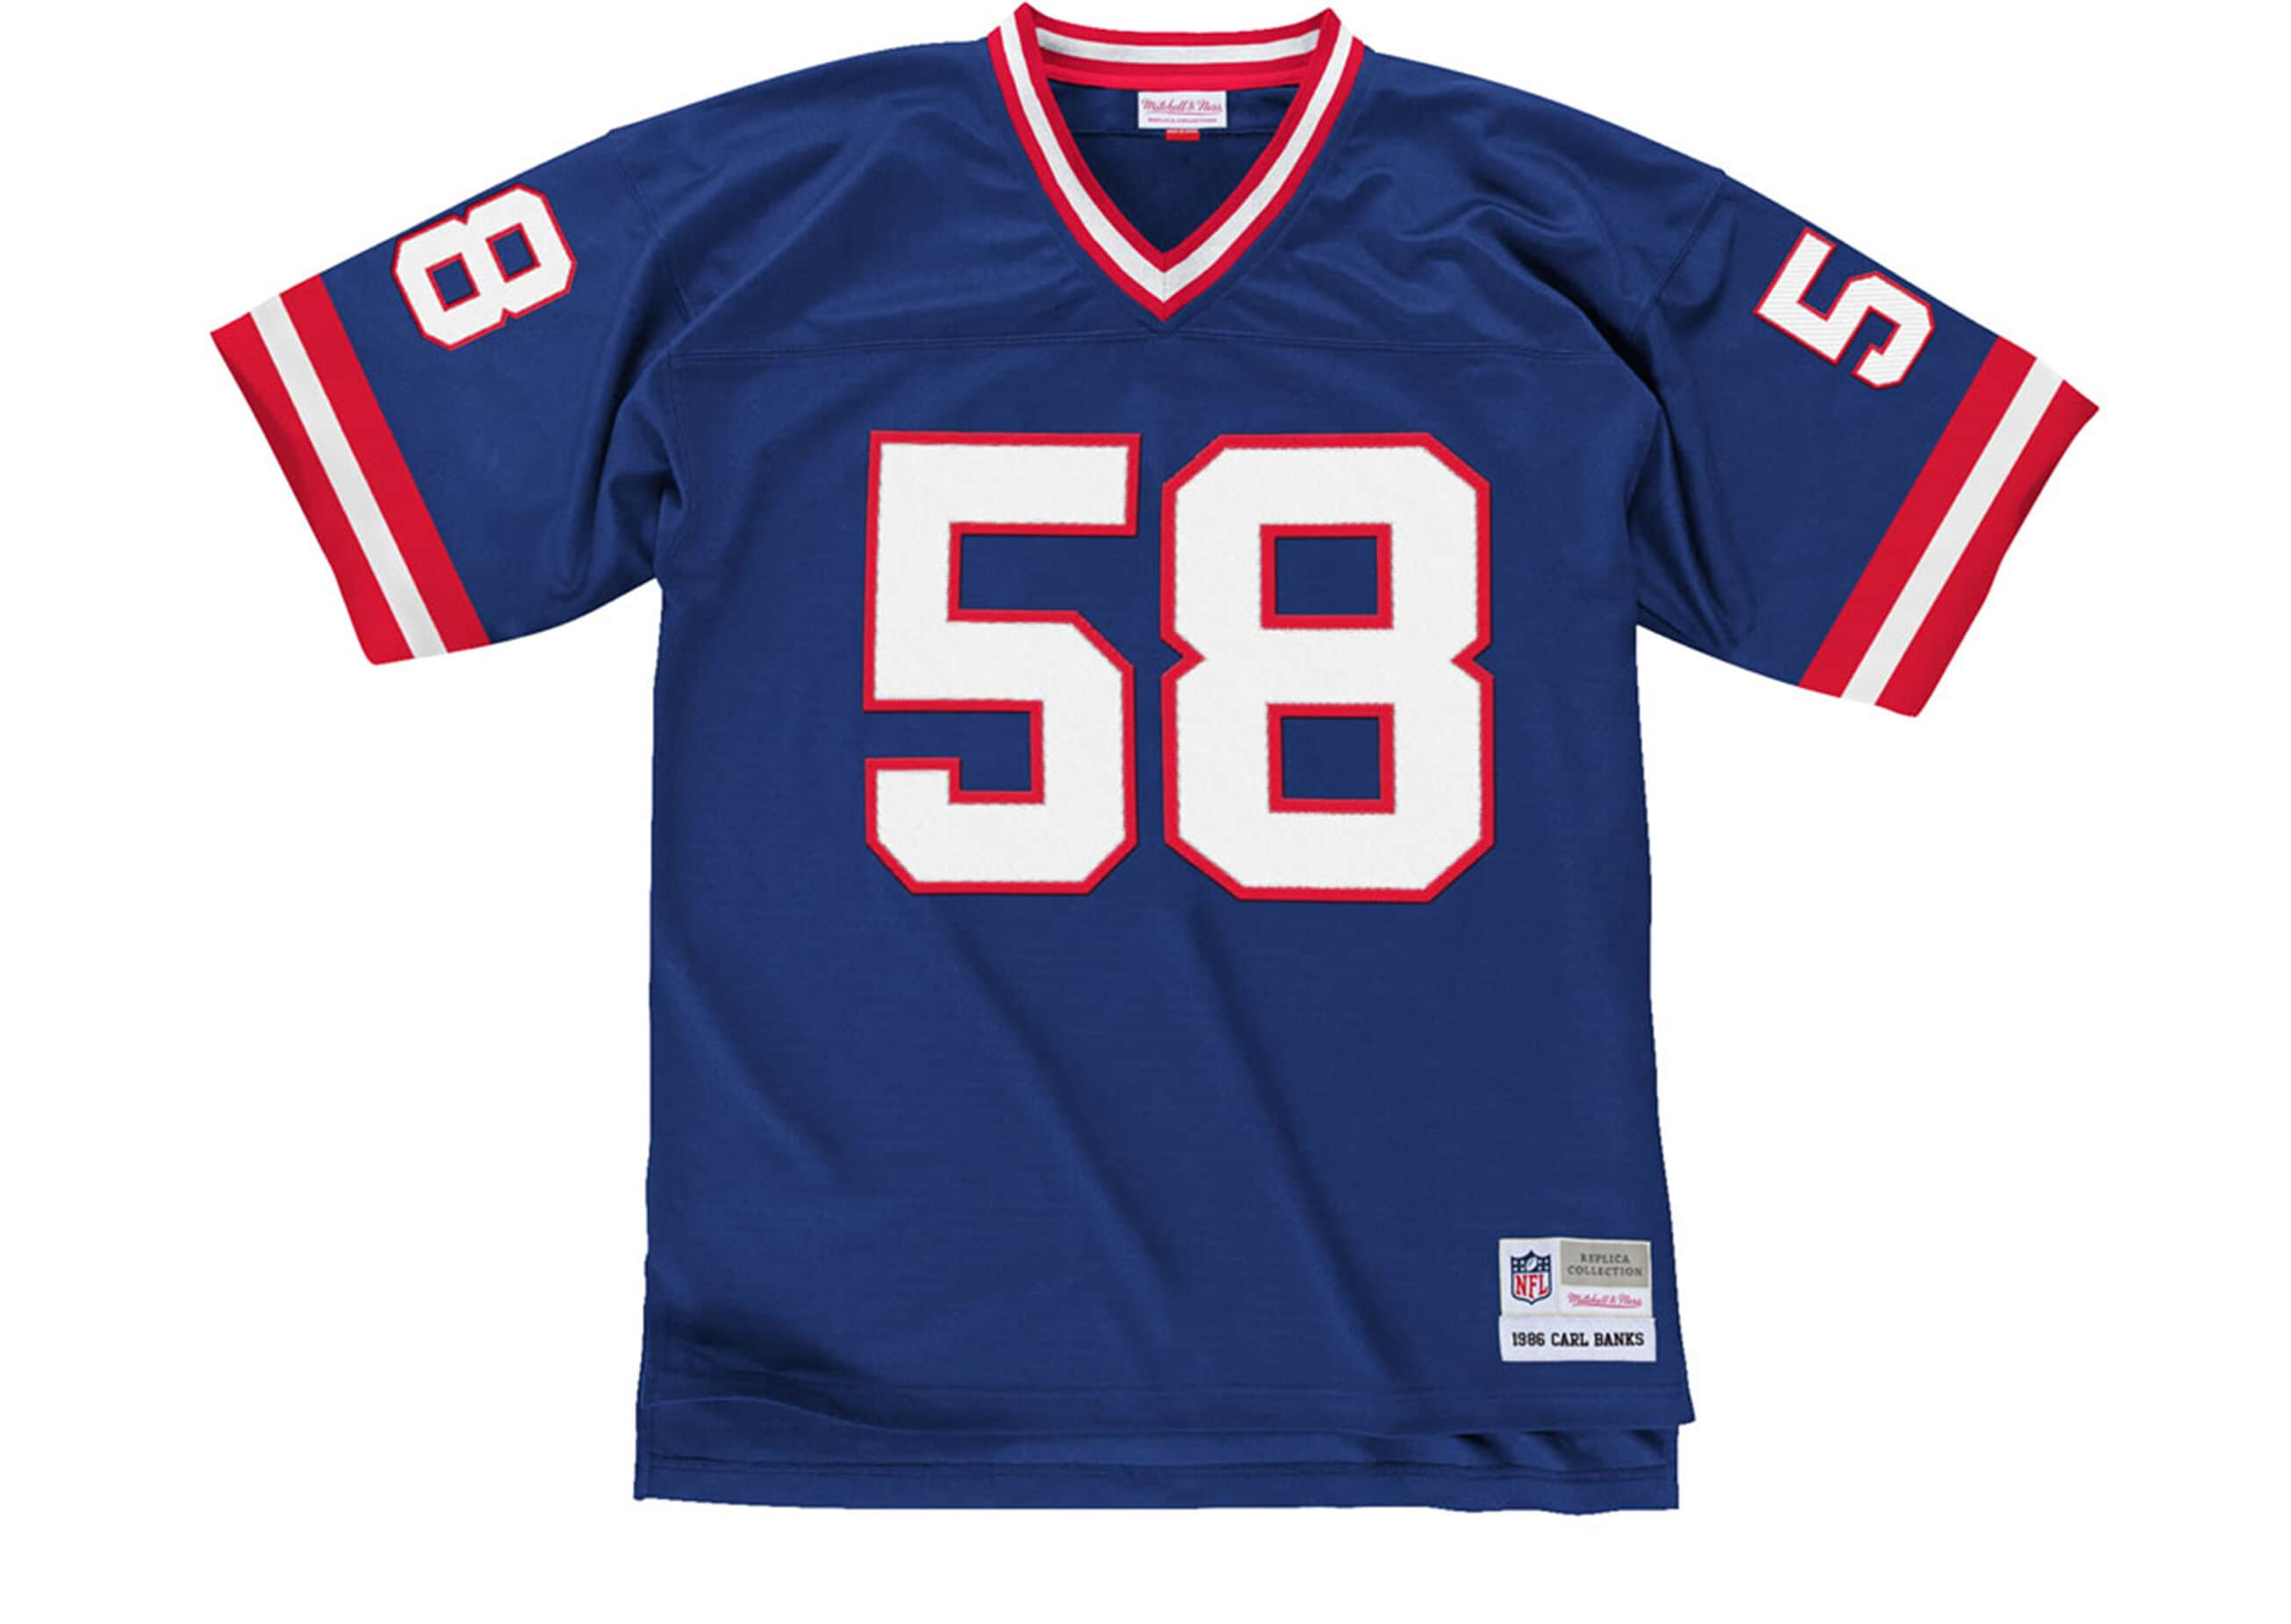 Carl Banks 1986 Legacy Jersey New York Giants